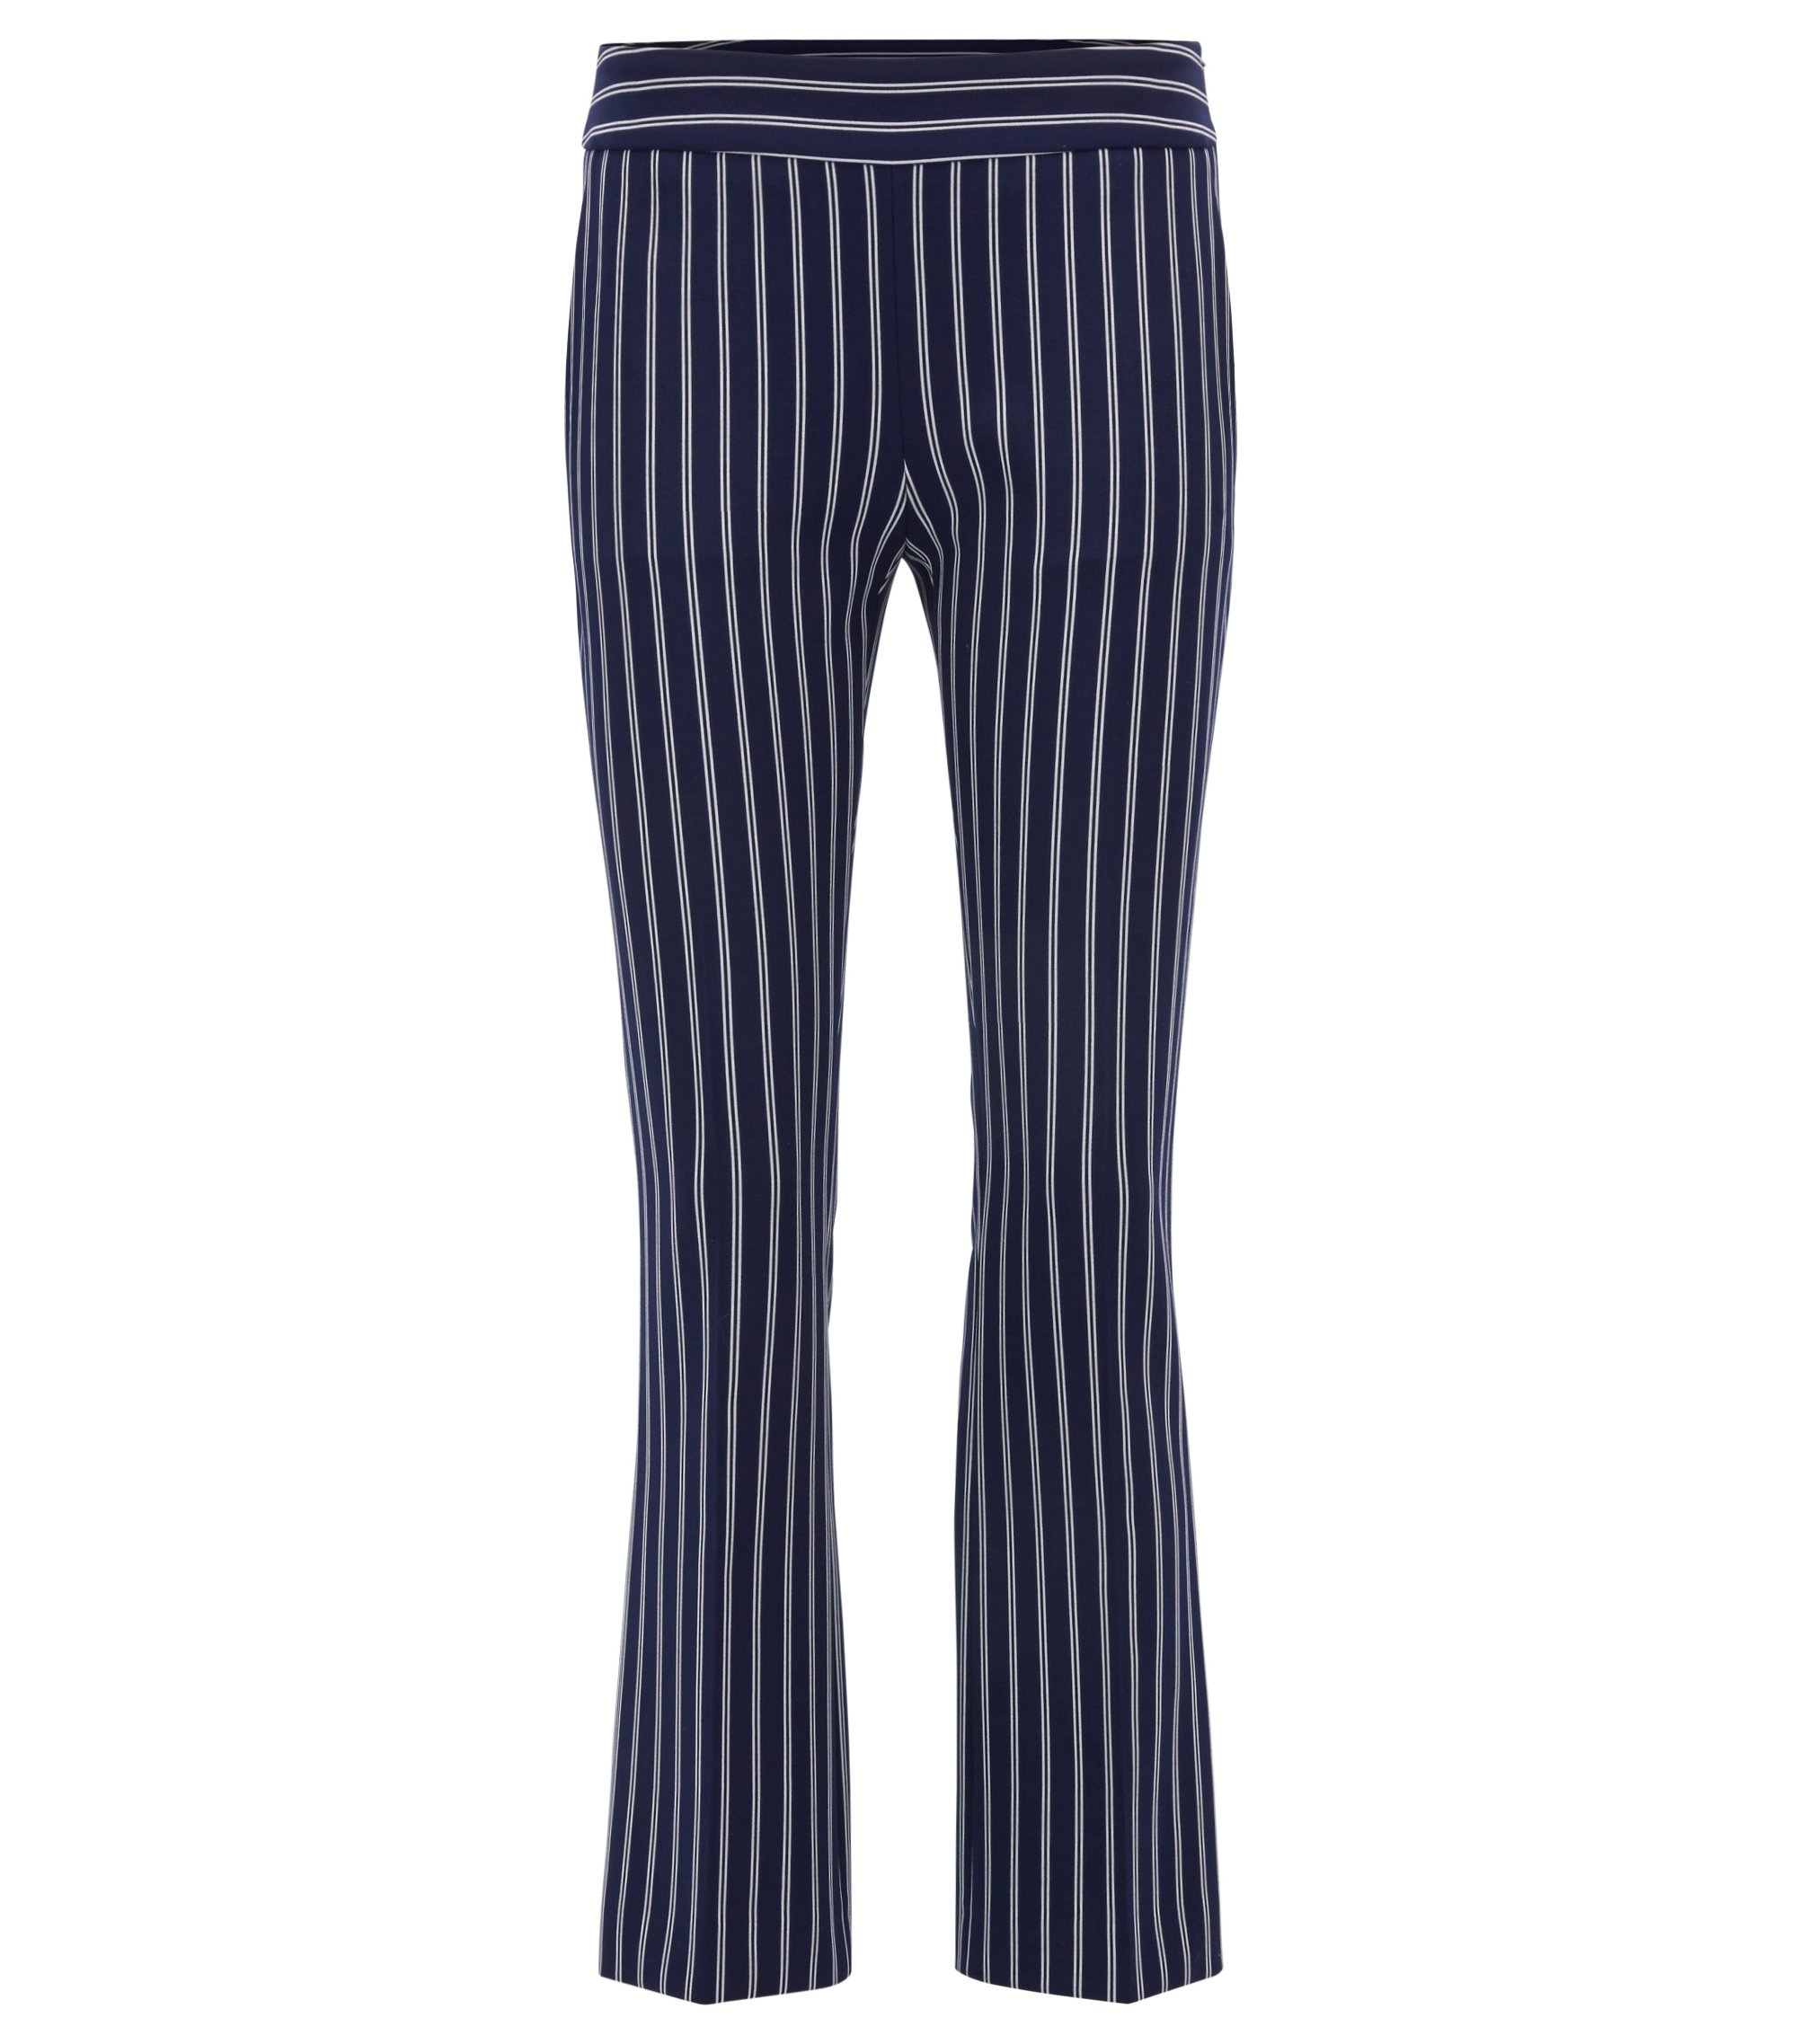 Striped Cropped Pant | Tebella, Patterned